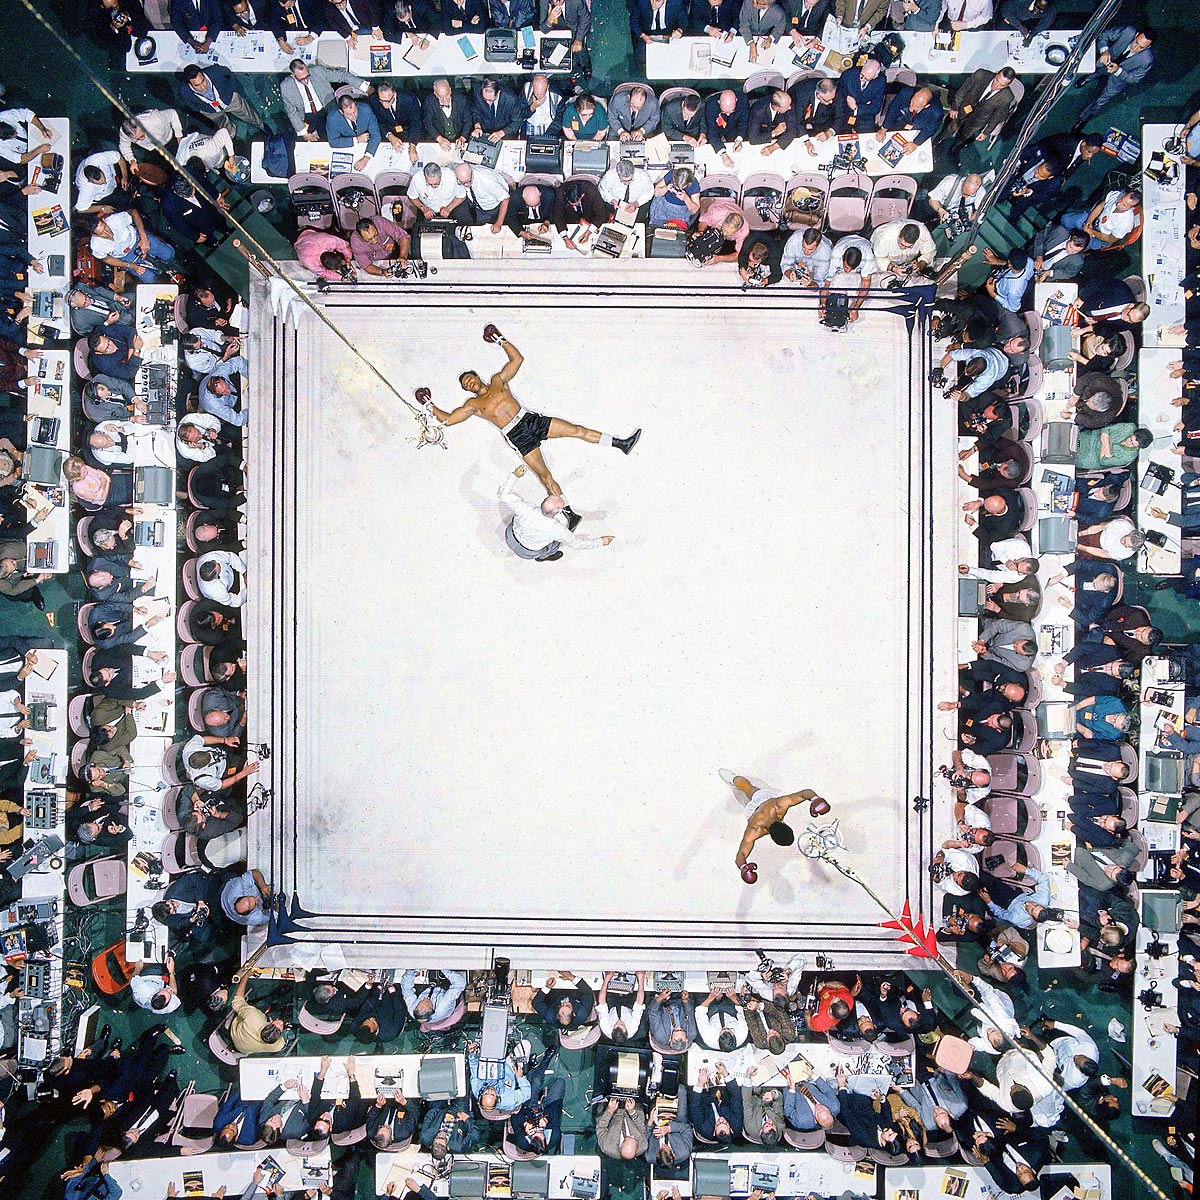 Nov. 14, 1966 | Ali knocks out Cleveland 'Big Cat' Williams in three rounds at the Houston Astrodome to defend his heavyweight title in November 1966. The bout drew a record indoor crowd of 35,460.